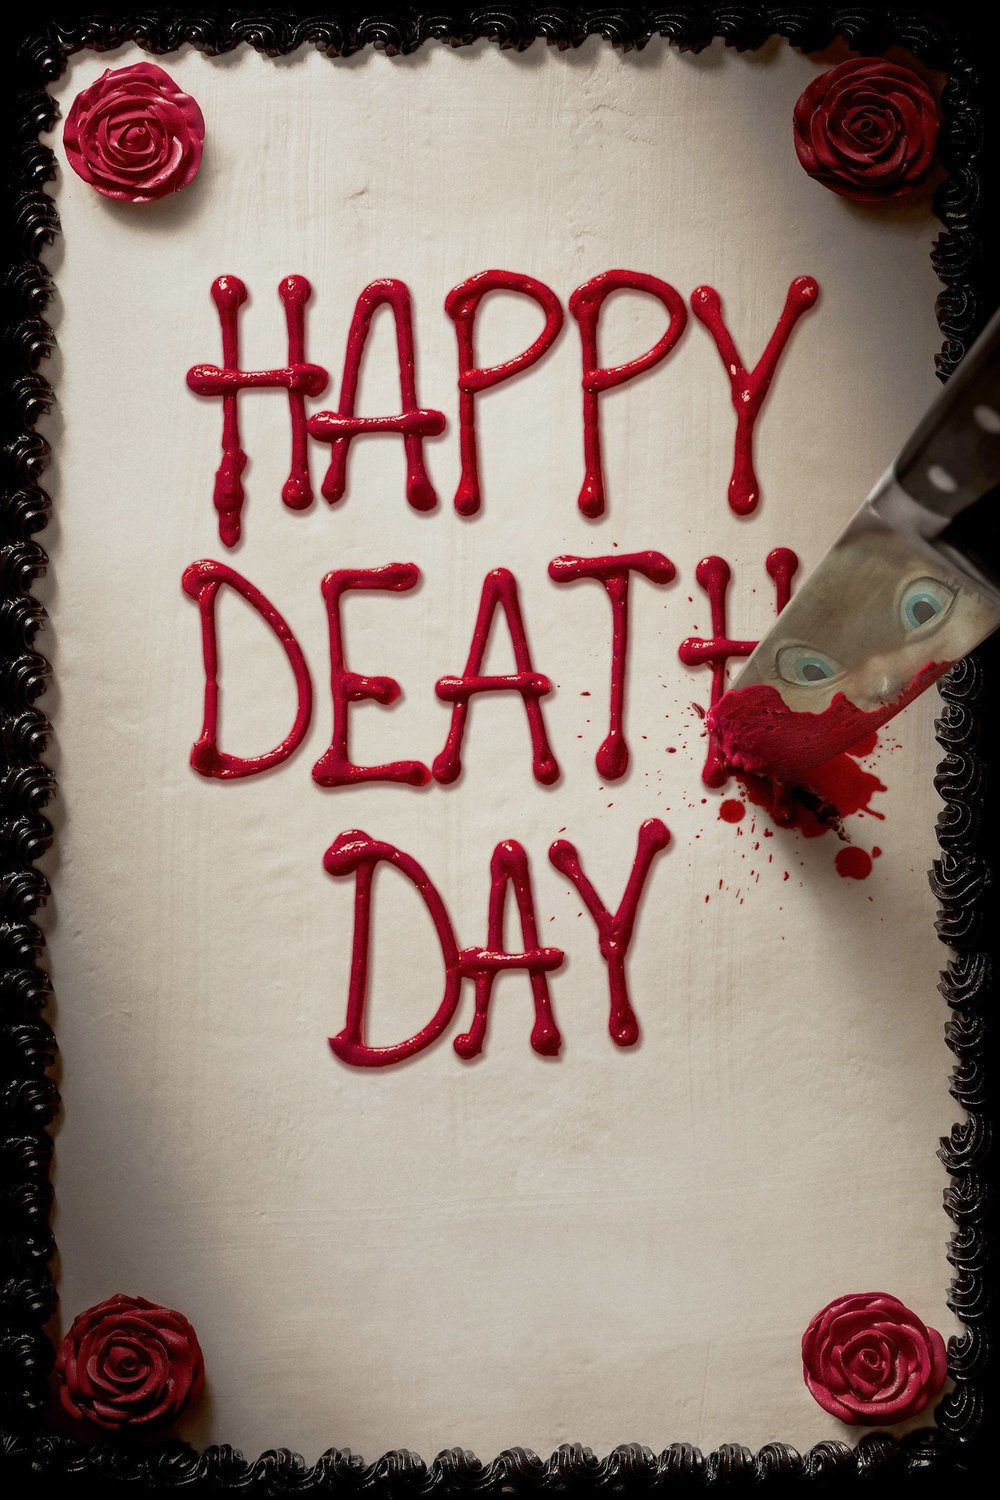 Happy Death Day.jpg